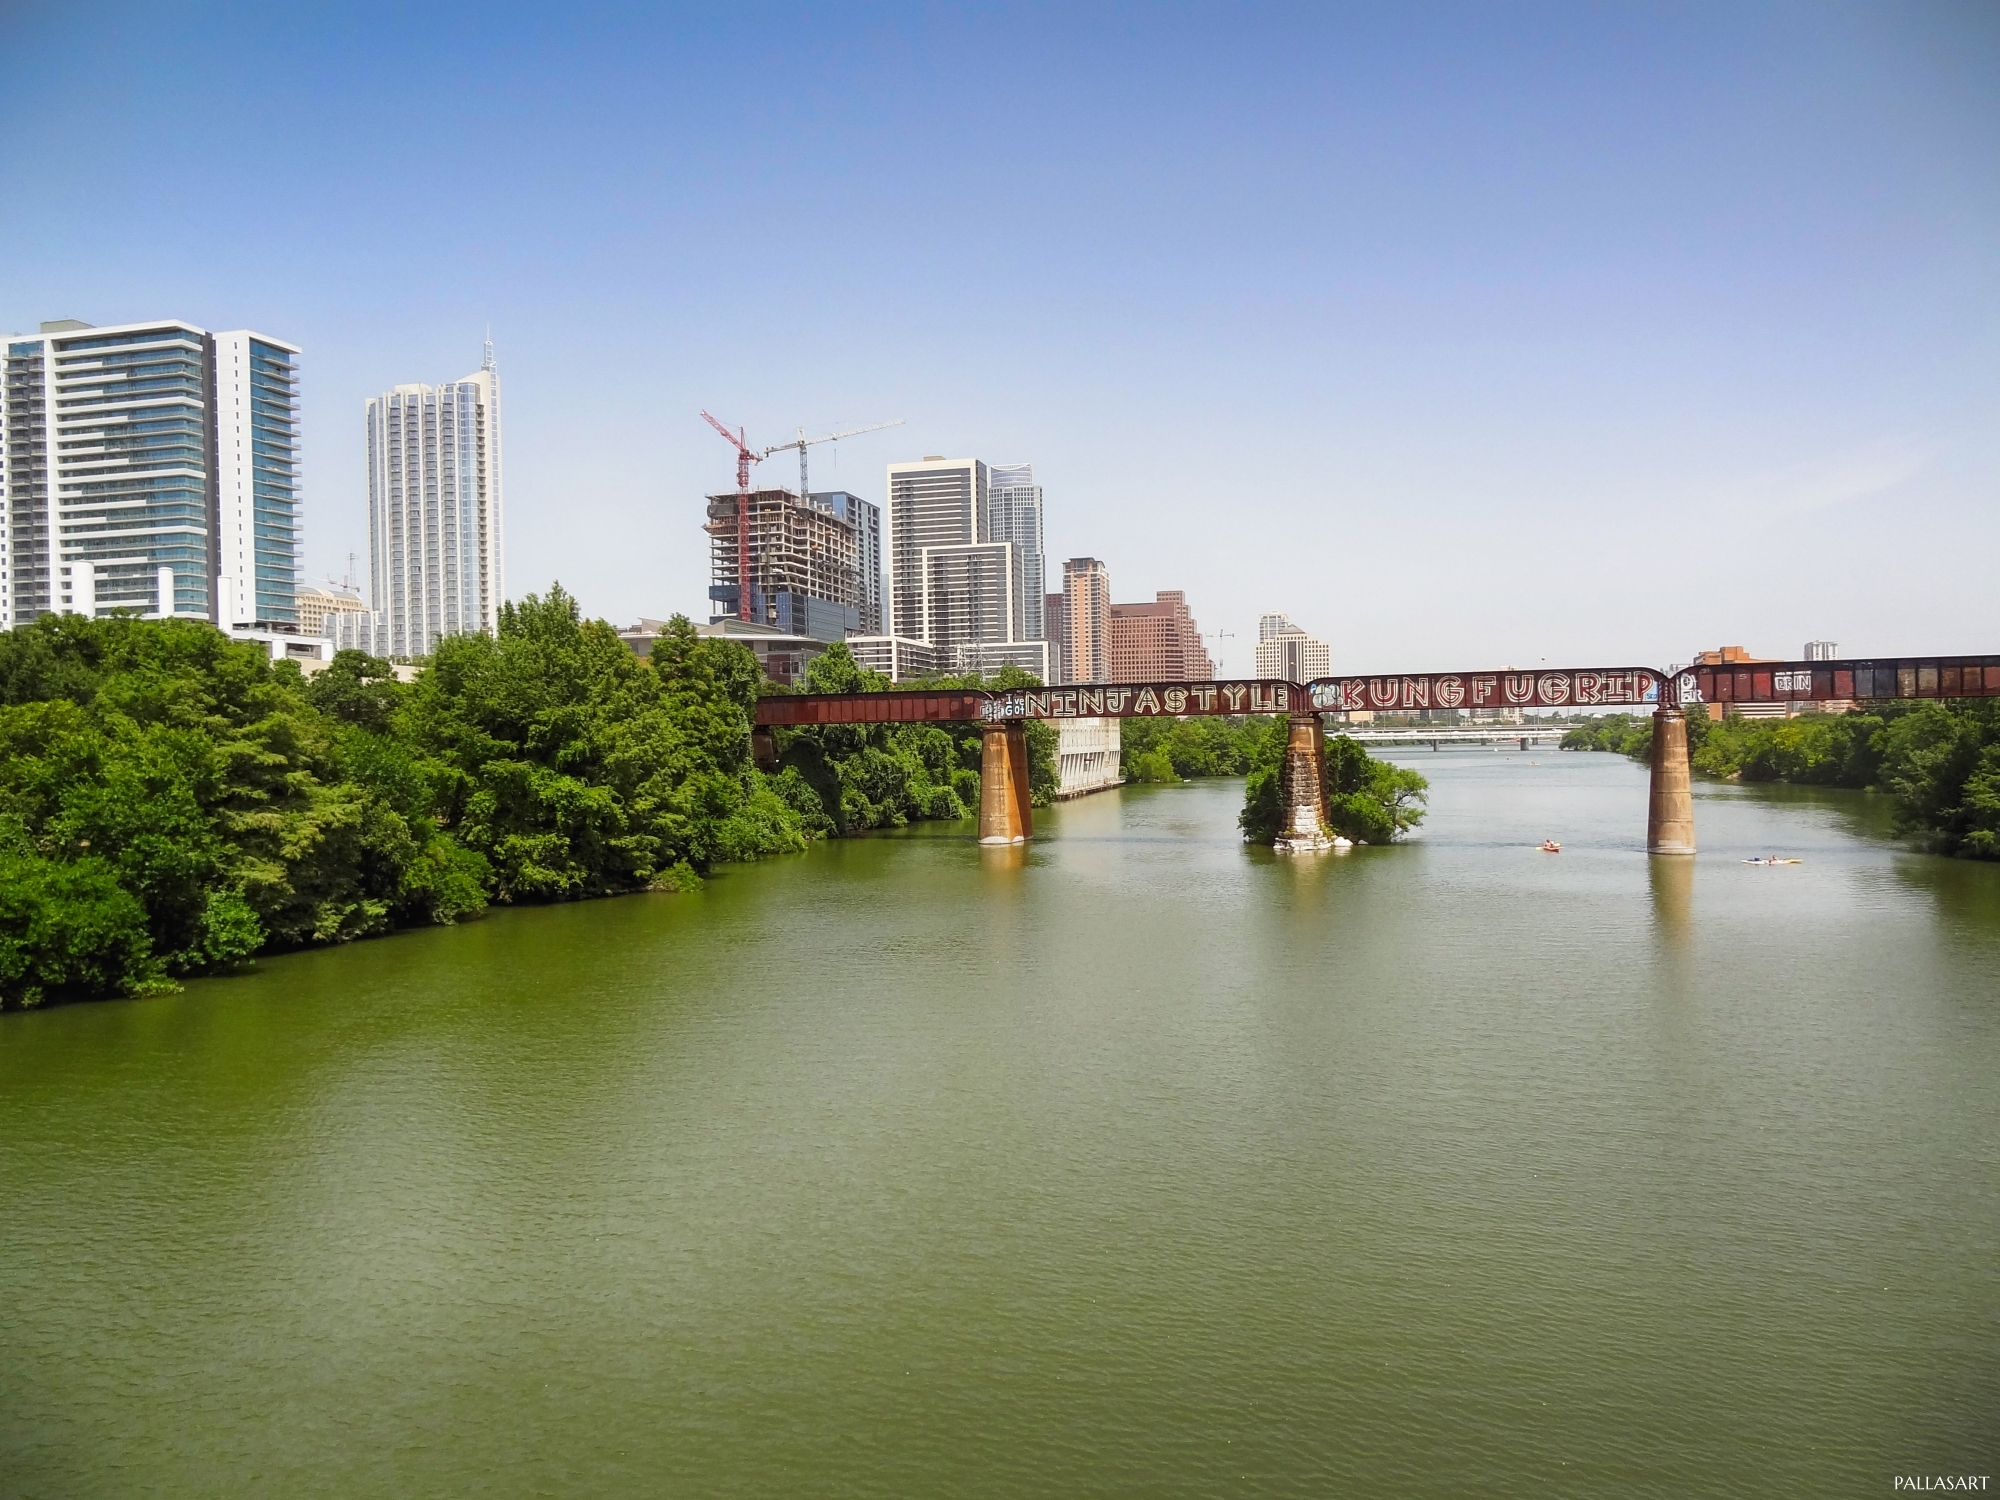 Railroad Tracks over Lady Bird Lake